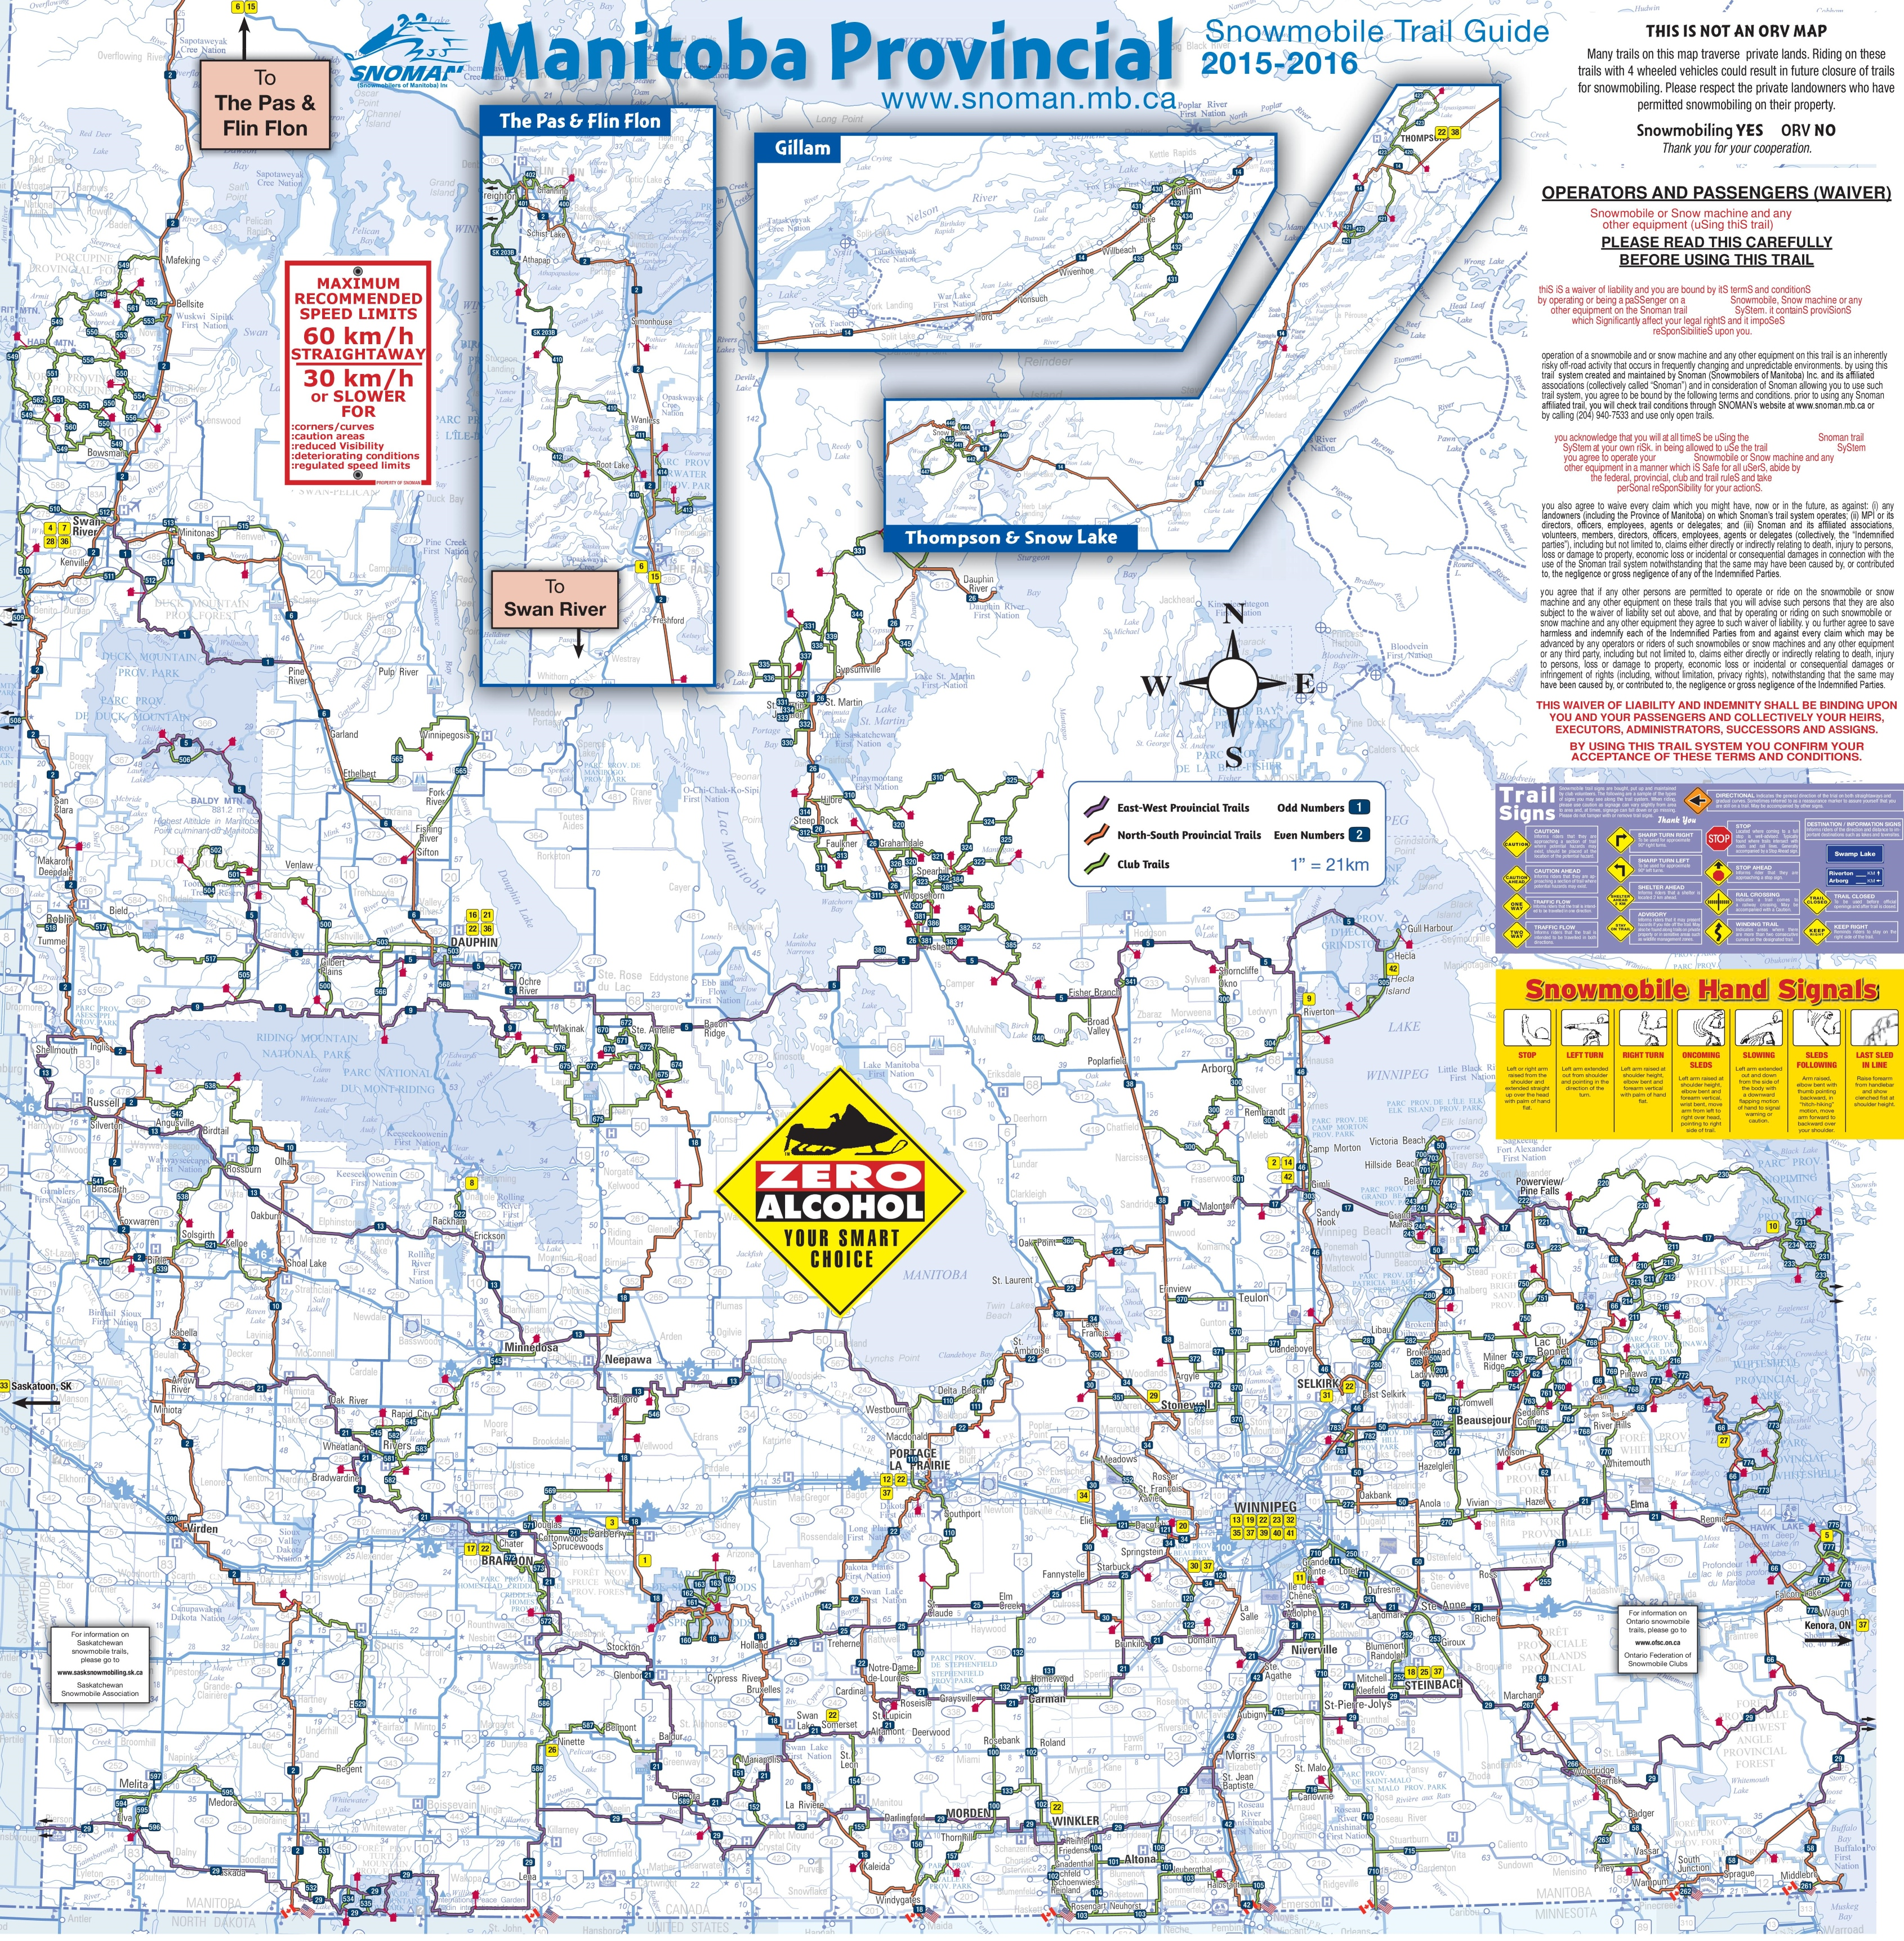 Snowmobile Trail Pass | Trail Maps, Trail Permit Prices & Conditions